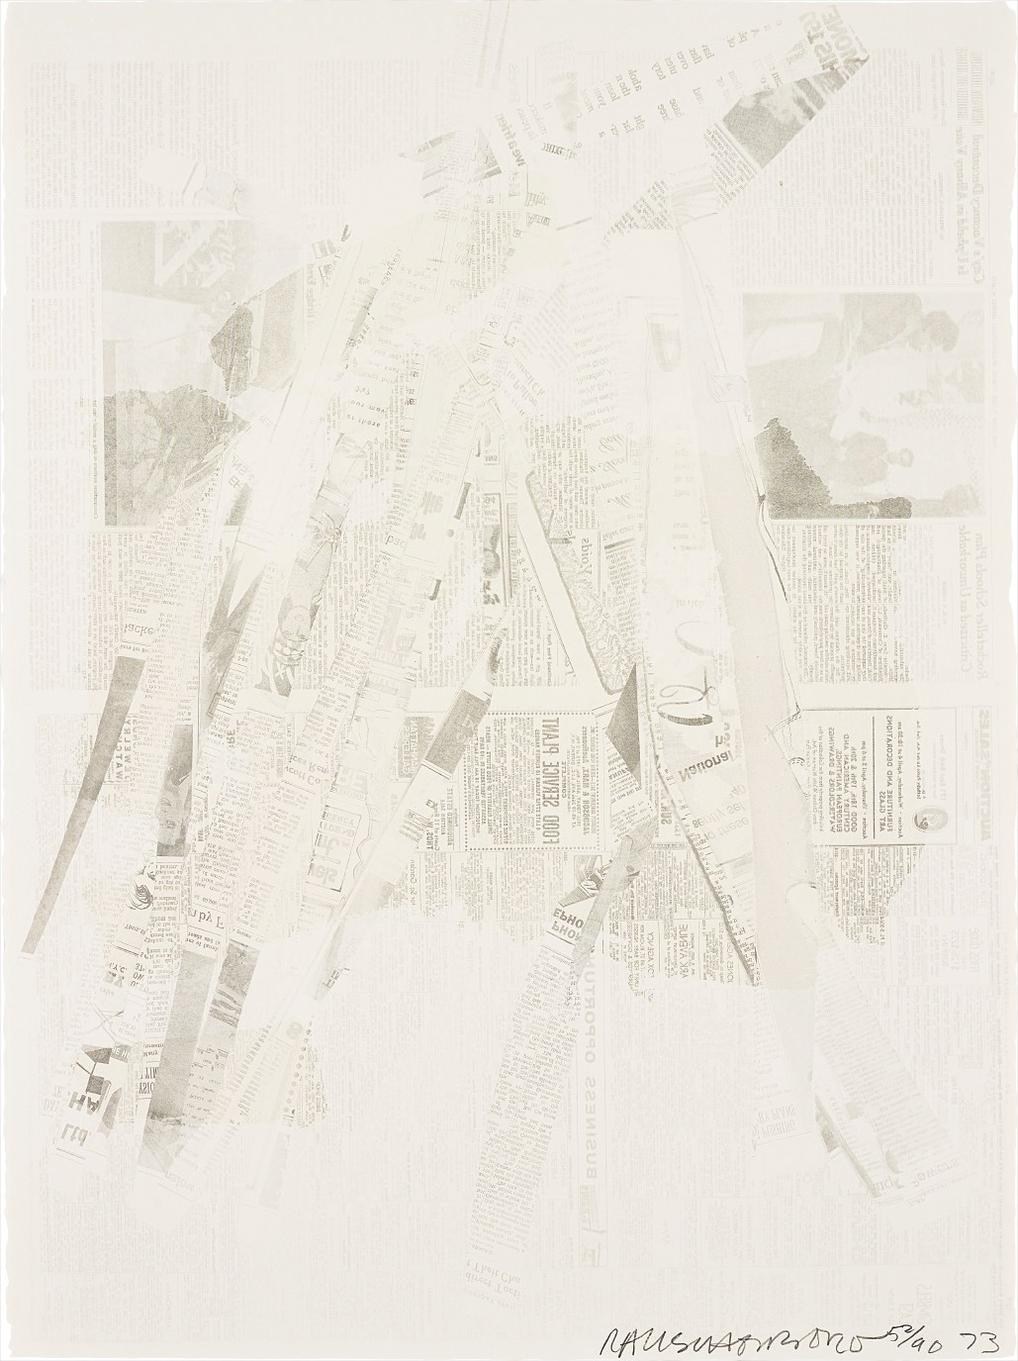 Robert Rauschenberg-Untitled, From Hommage A Picasso-1973